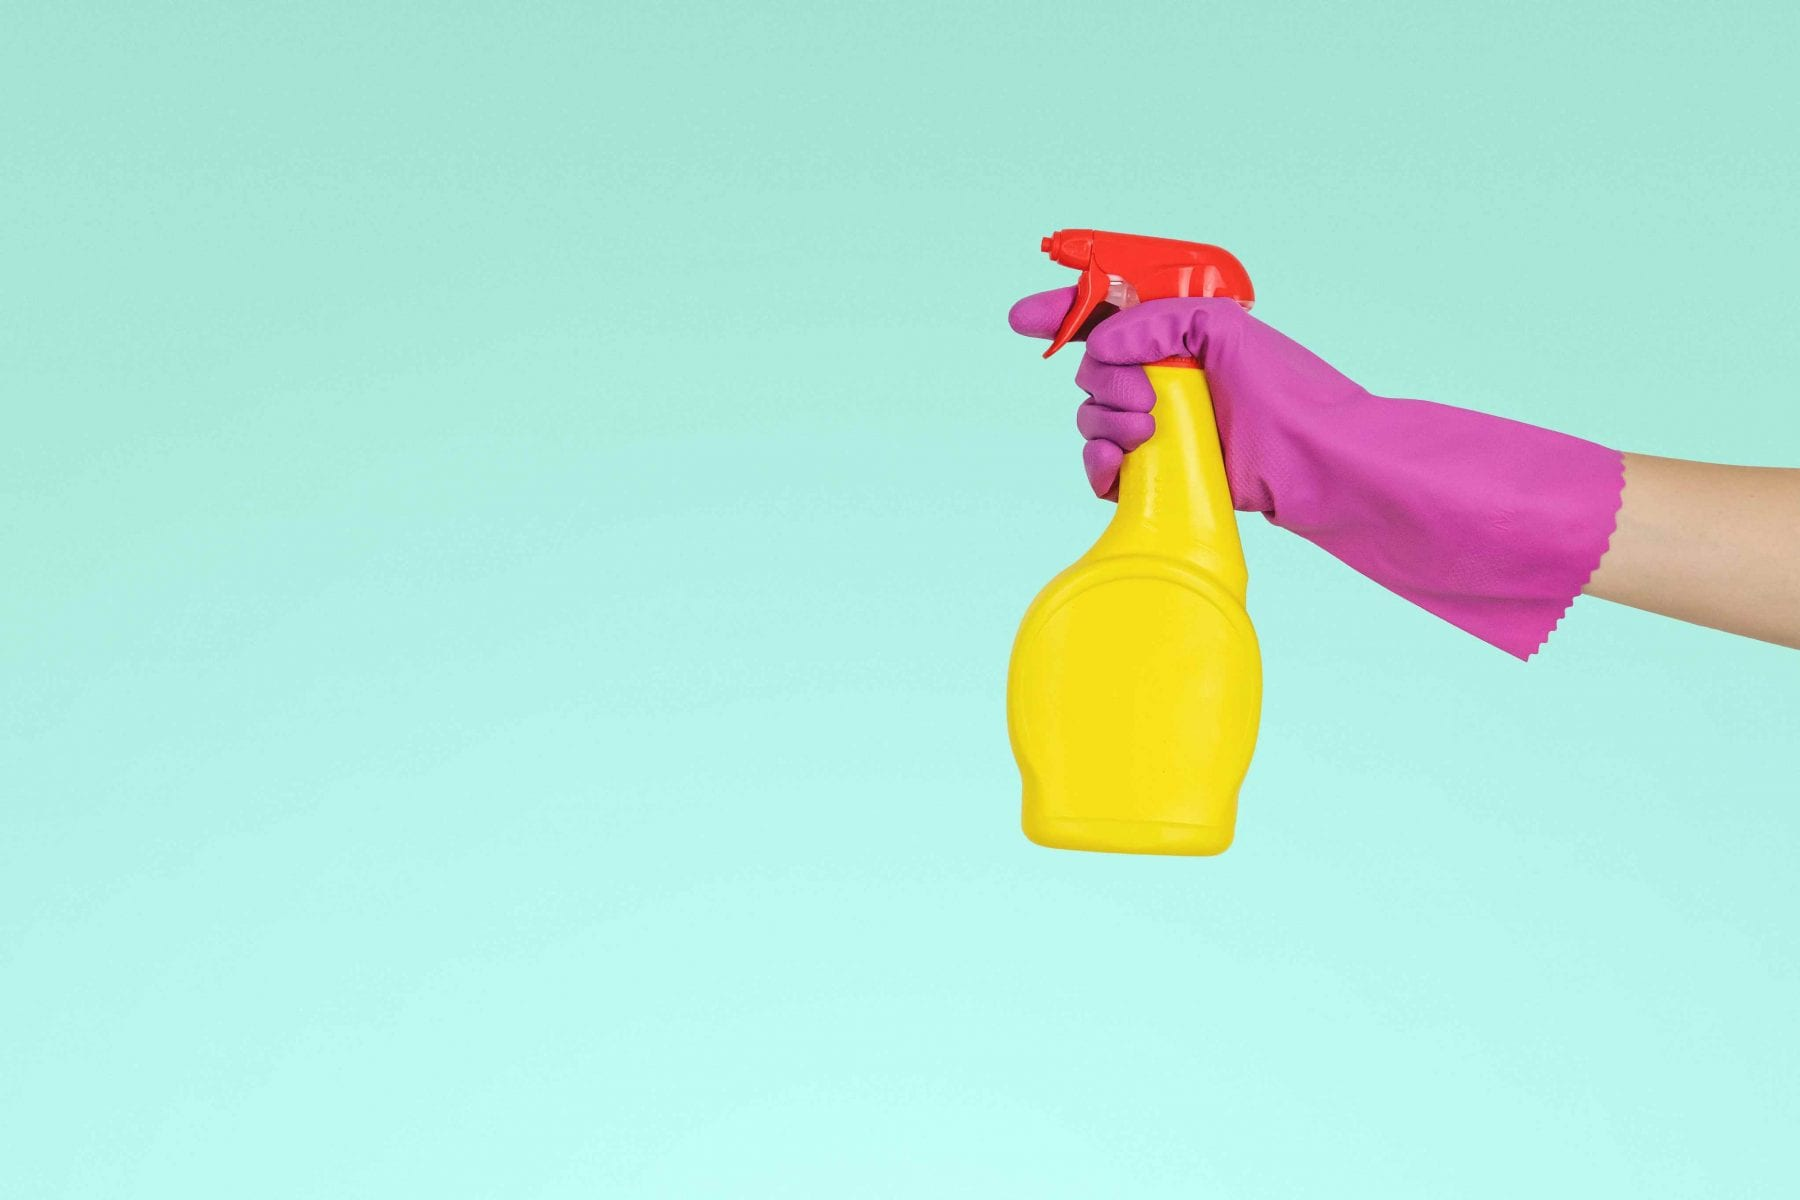 person wearing pink glove holding cleaning bottle